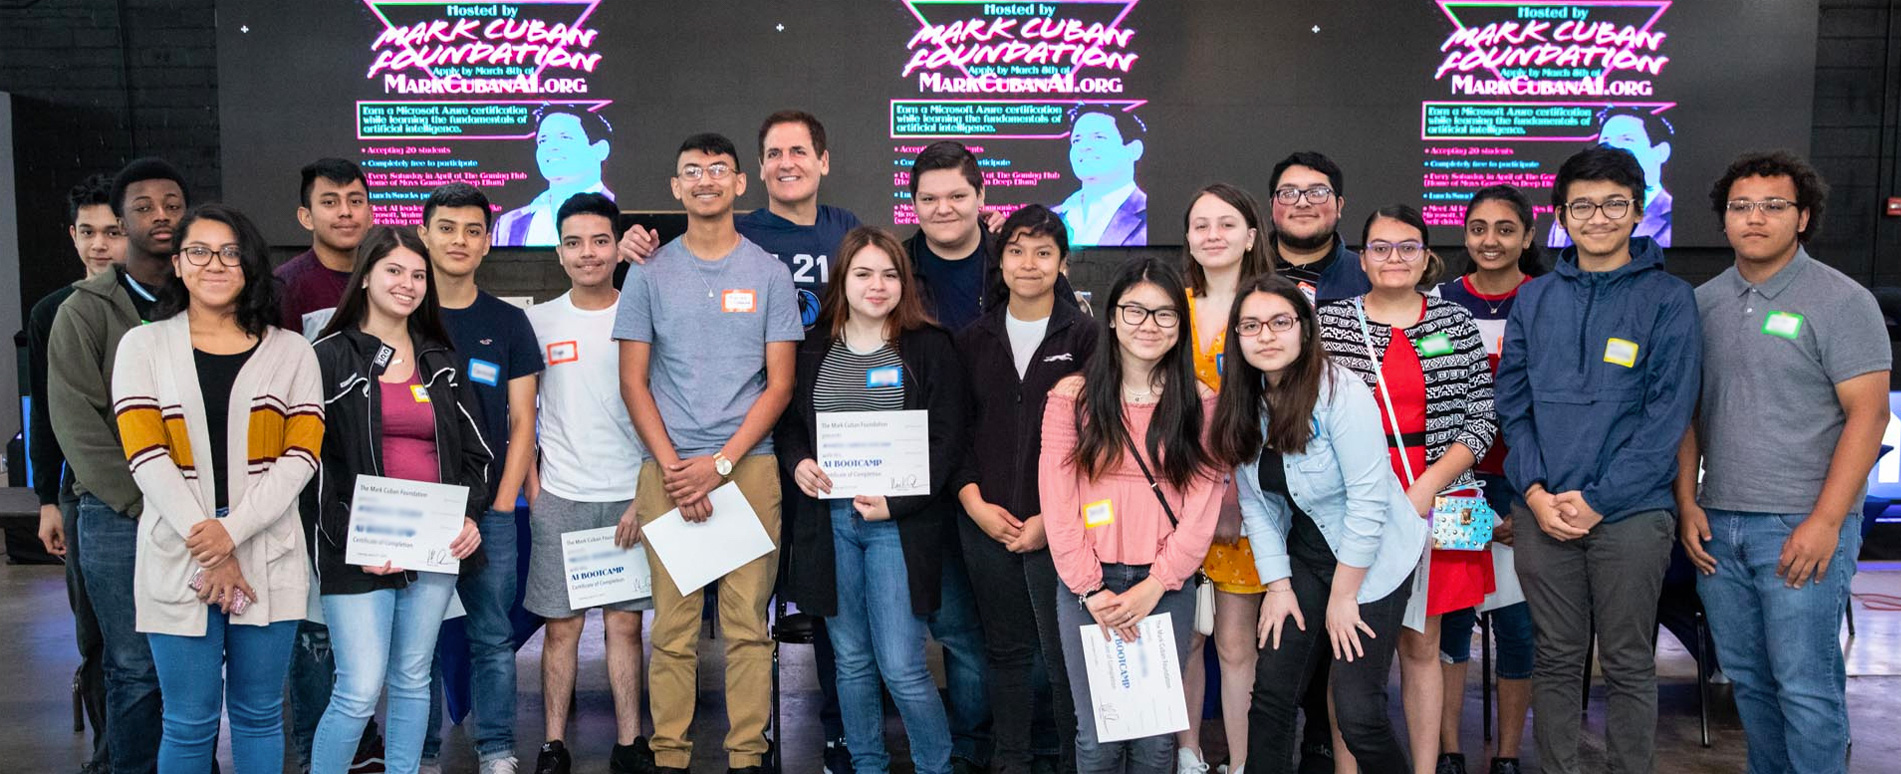 Students from the Mark Cuban Foundation AI Bootcamp